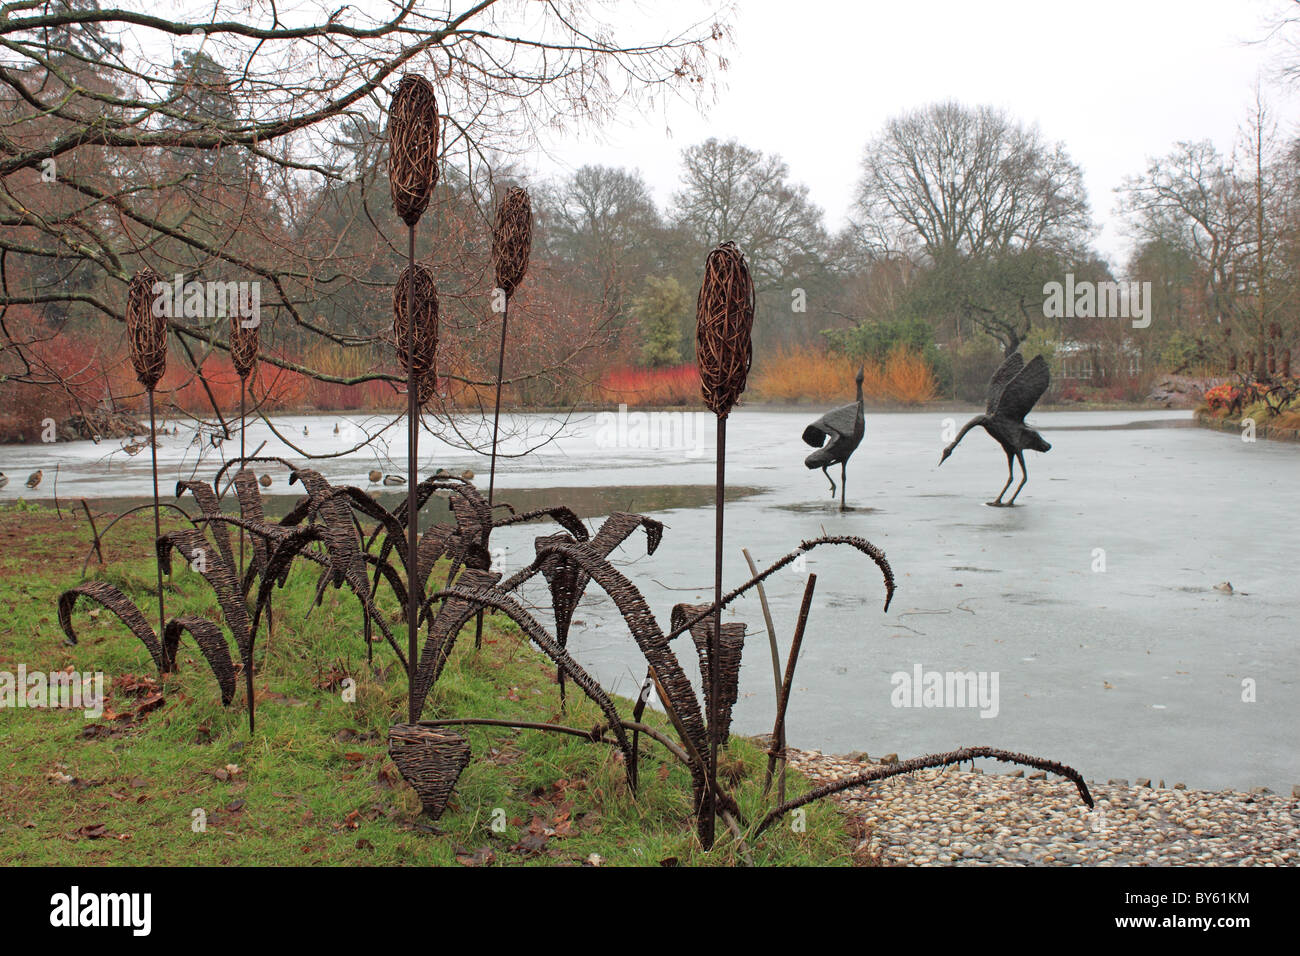 Metal sculptures of reeds and storks, frozen lake in Seven Acres, RHS Garden Wisley, Surrey, England, Great Britain, - Stock Image